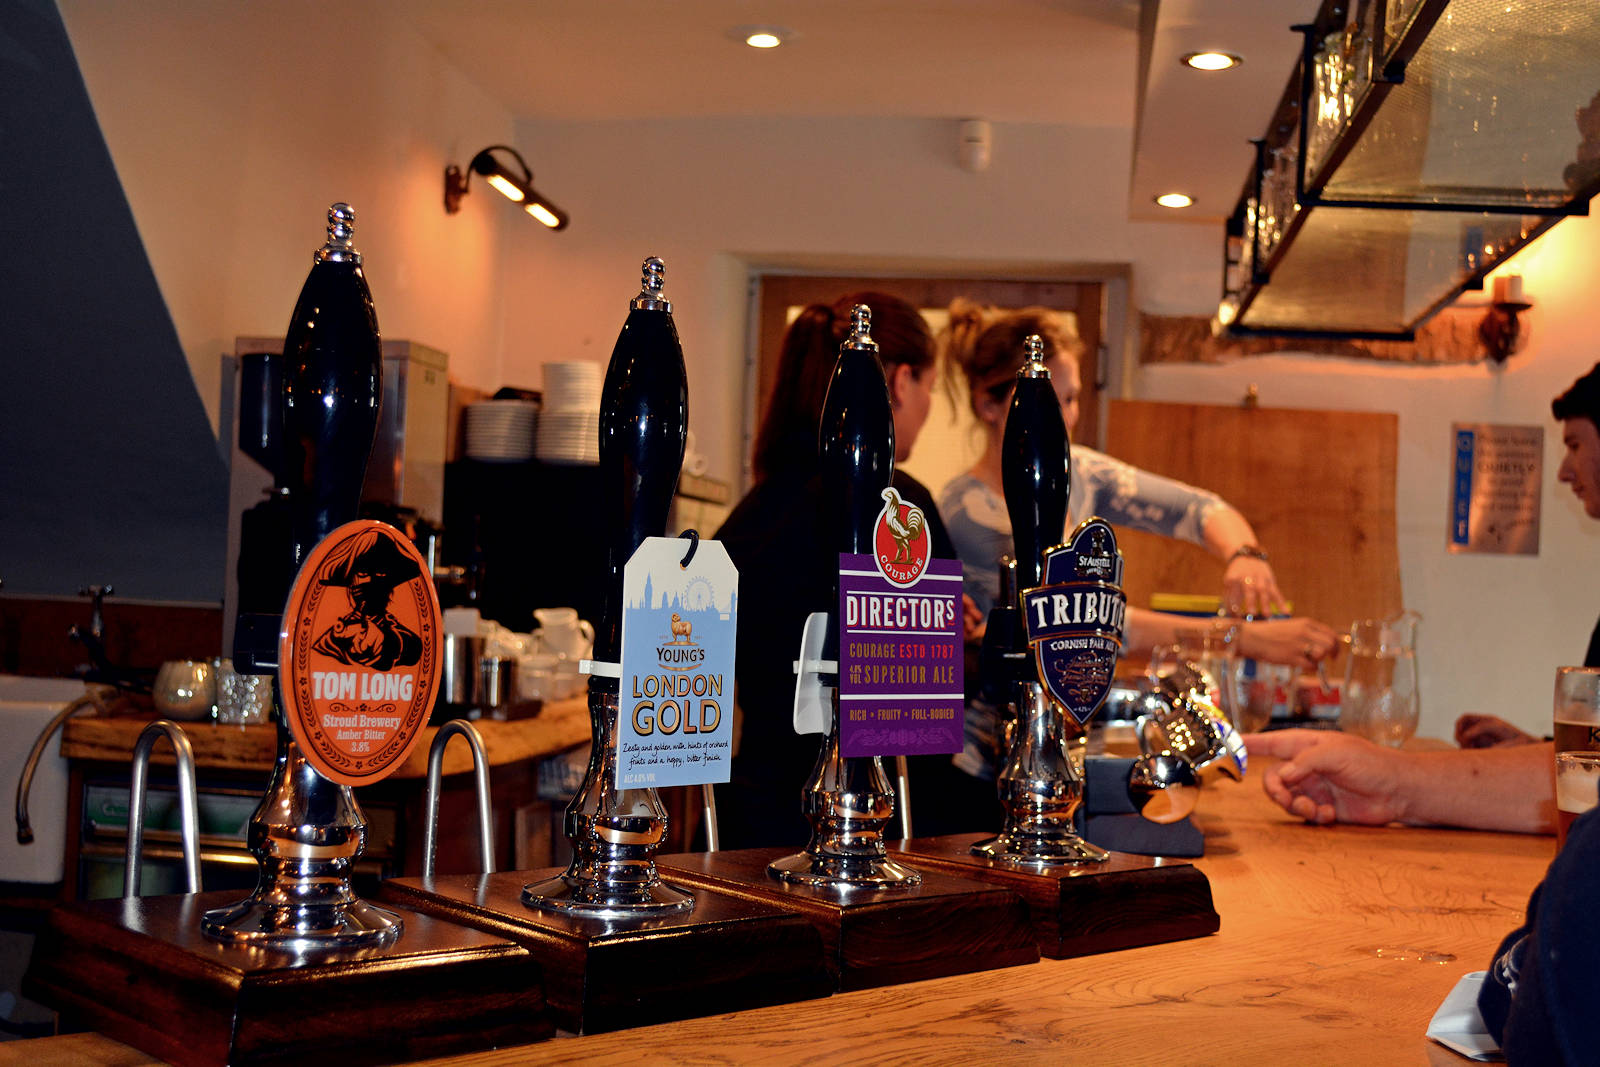 The Railway Inn Pub and Restaurant - Fairford Cotswold bar taps